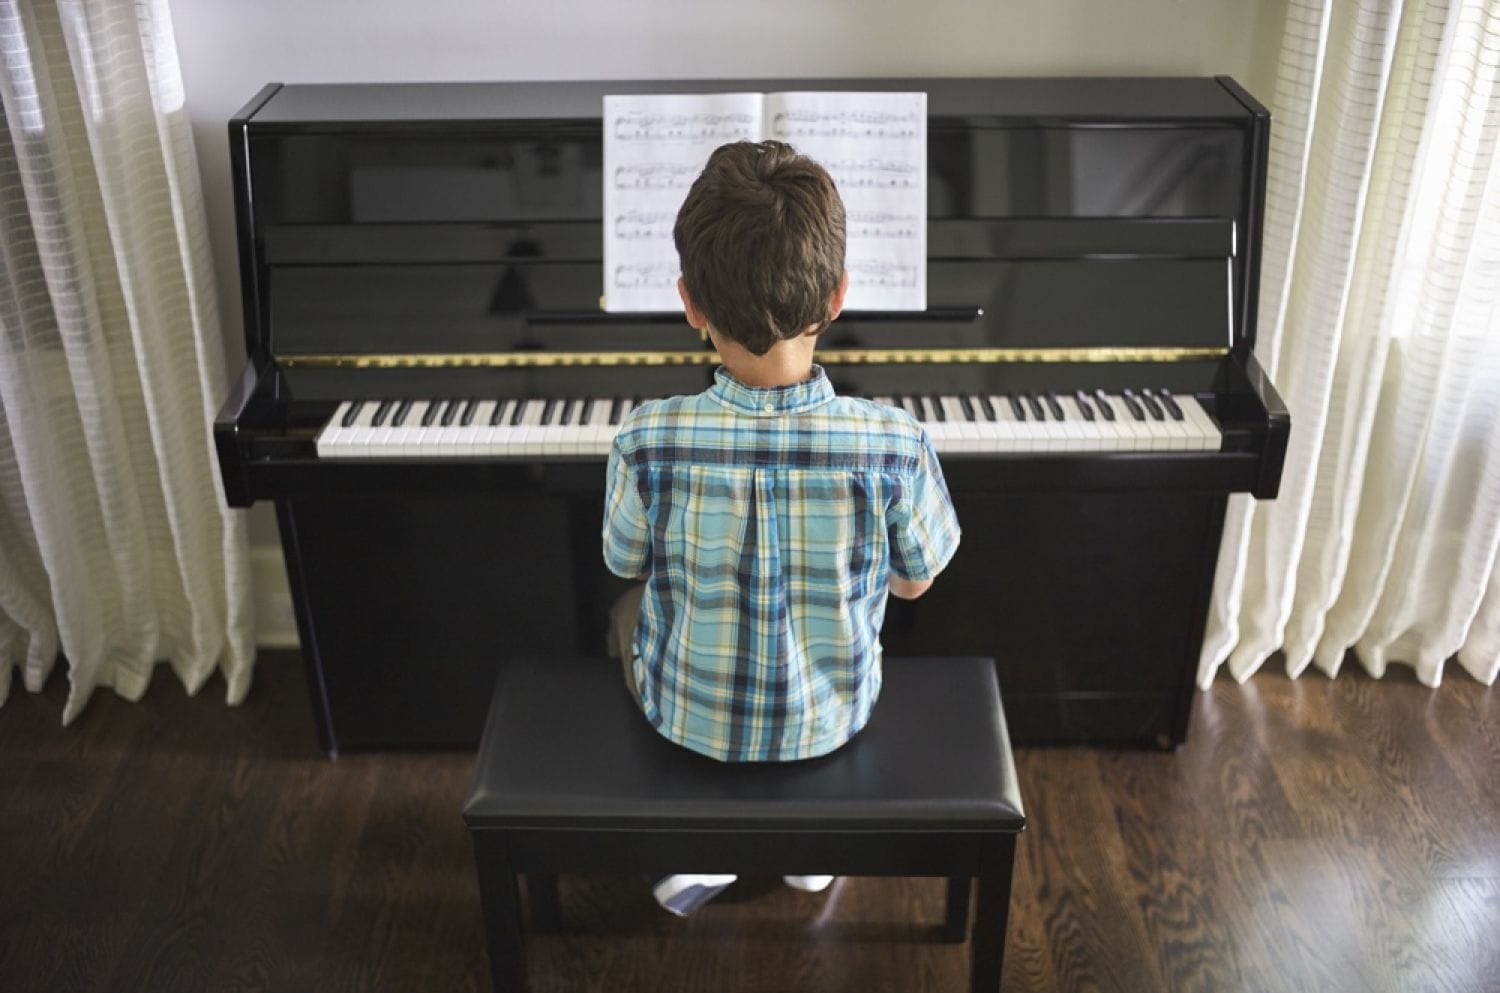 Small boy with back to camera as he is sitting at piano playing while looking at sheet music on ledge.